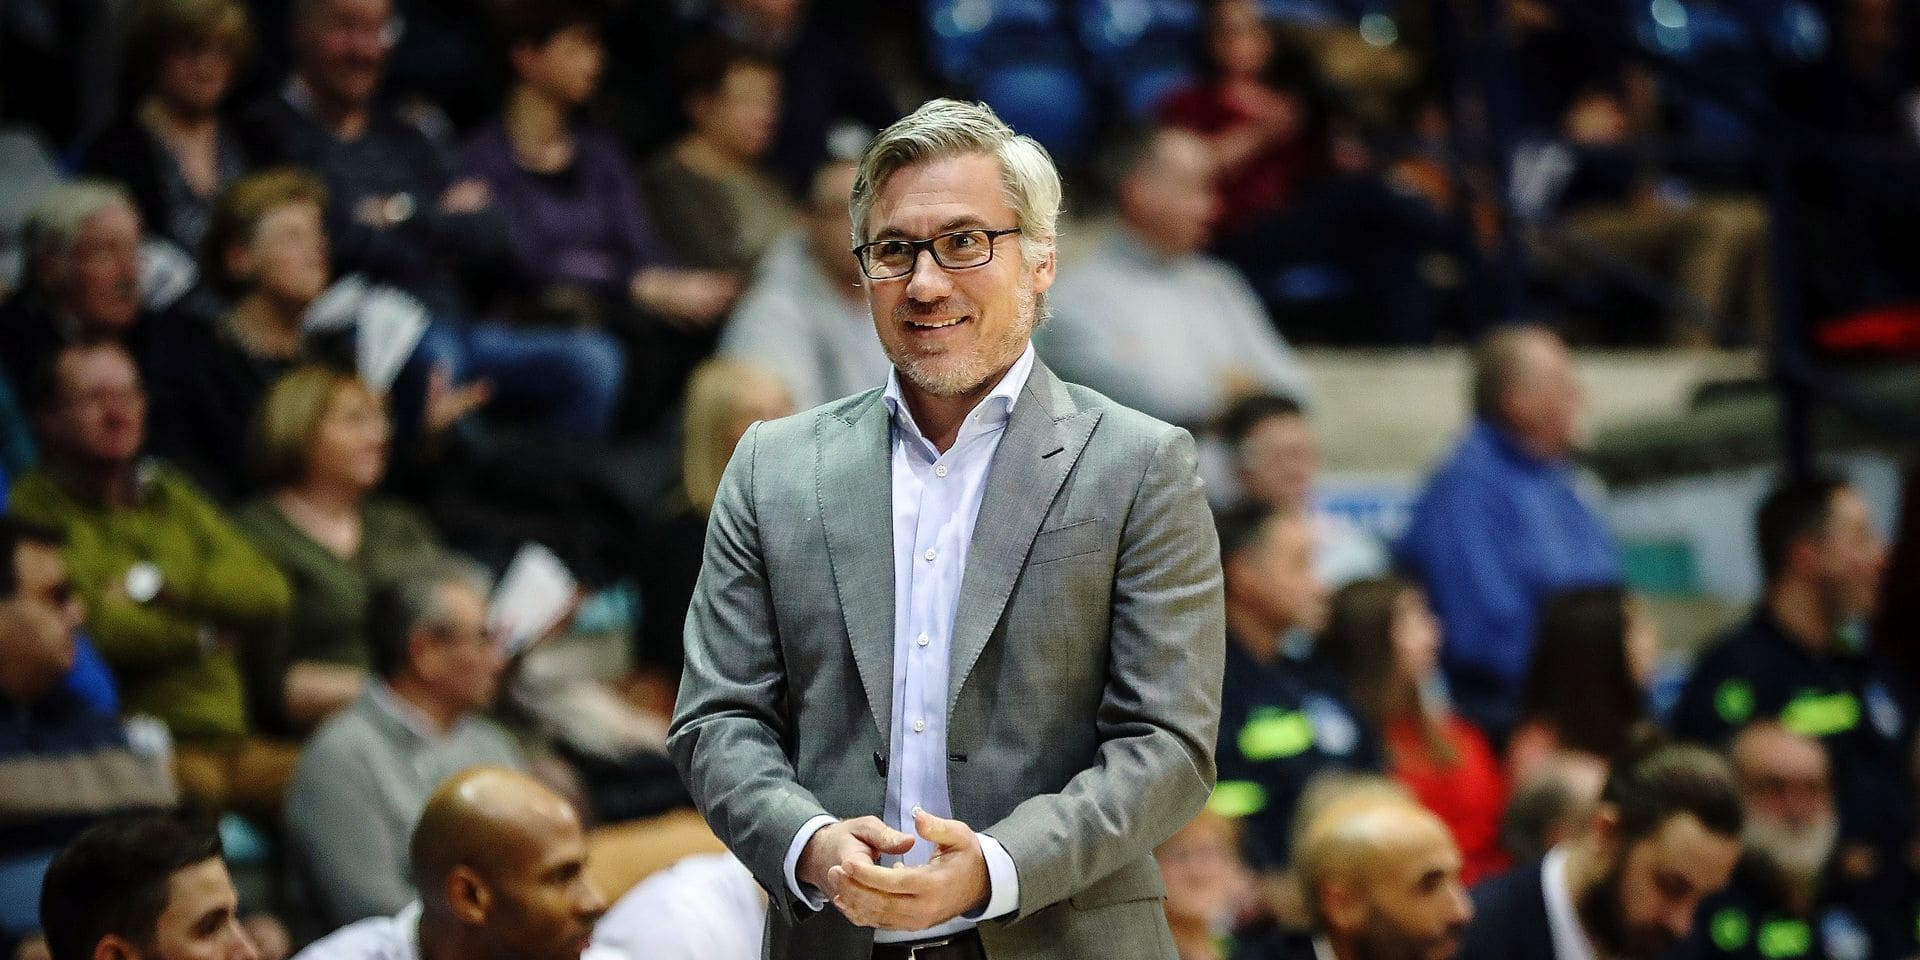 Mons 12/01/2019 Basket/EuroMillions League/Game 13/Belfius Mons-Brussels/ Crevecoeur coach Brussels PHOTO : BENOIT BOUCHEZ Copyright PHOTO NEWS 2019-PICTURES NOT INCLUDED IN THE CONTRACTS